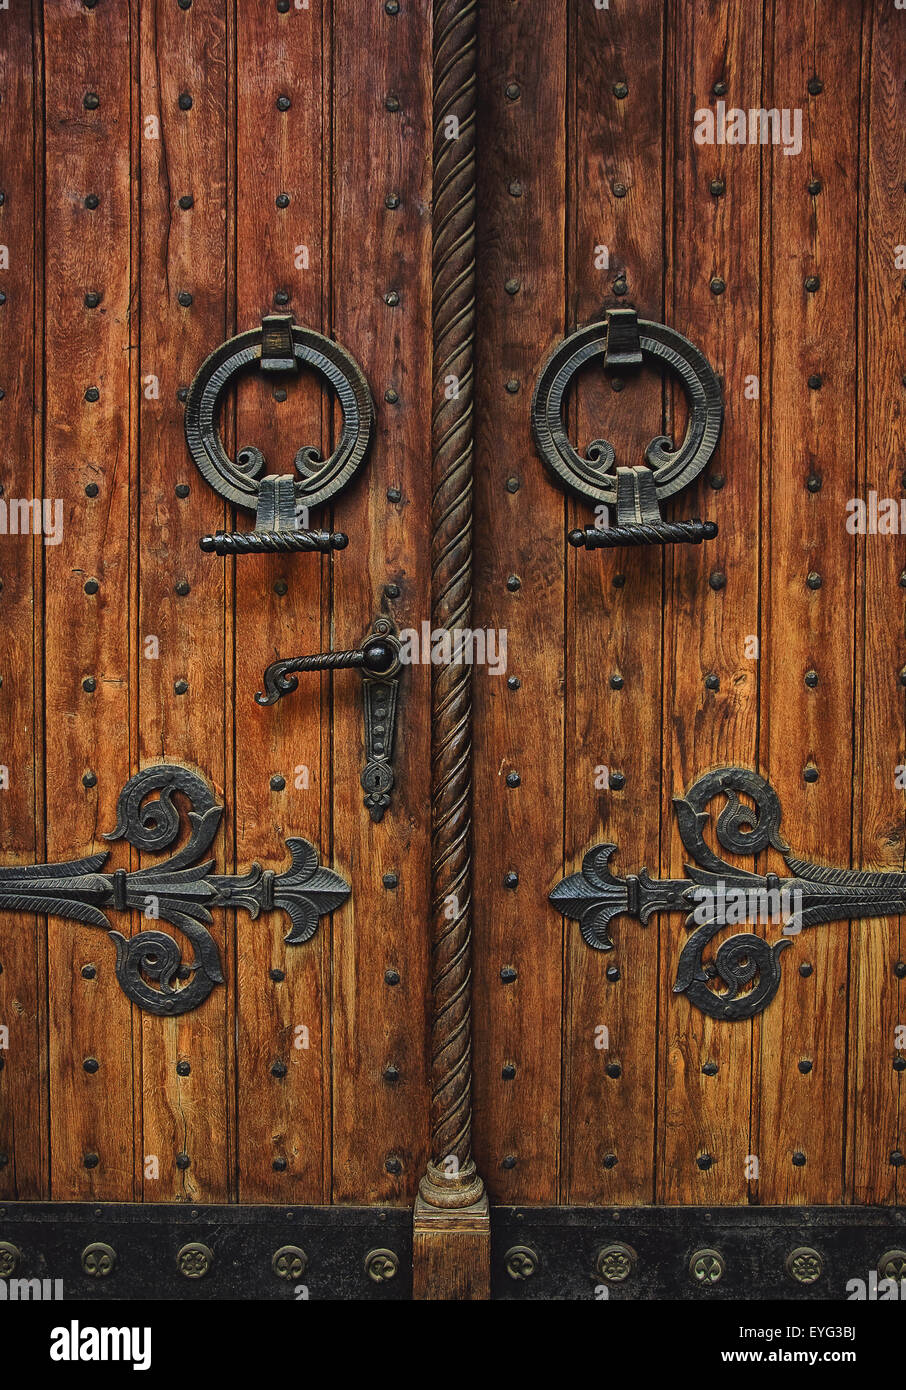 Old carved wooden church door with hinges - Stock Image & Door Hinges Stock Photos \u0026 Door Hinges Stock Images - Alamy